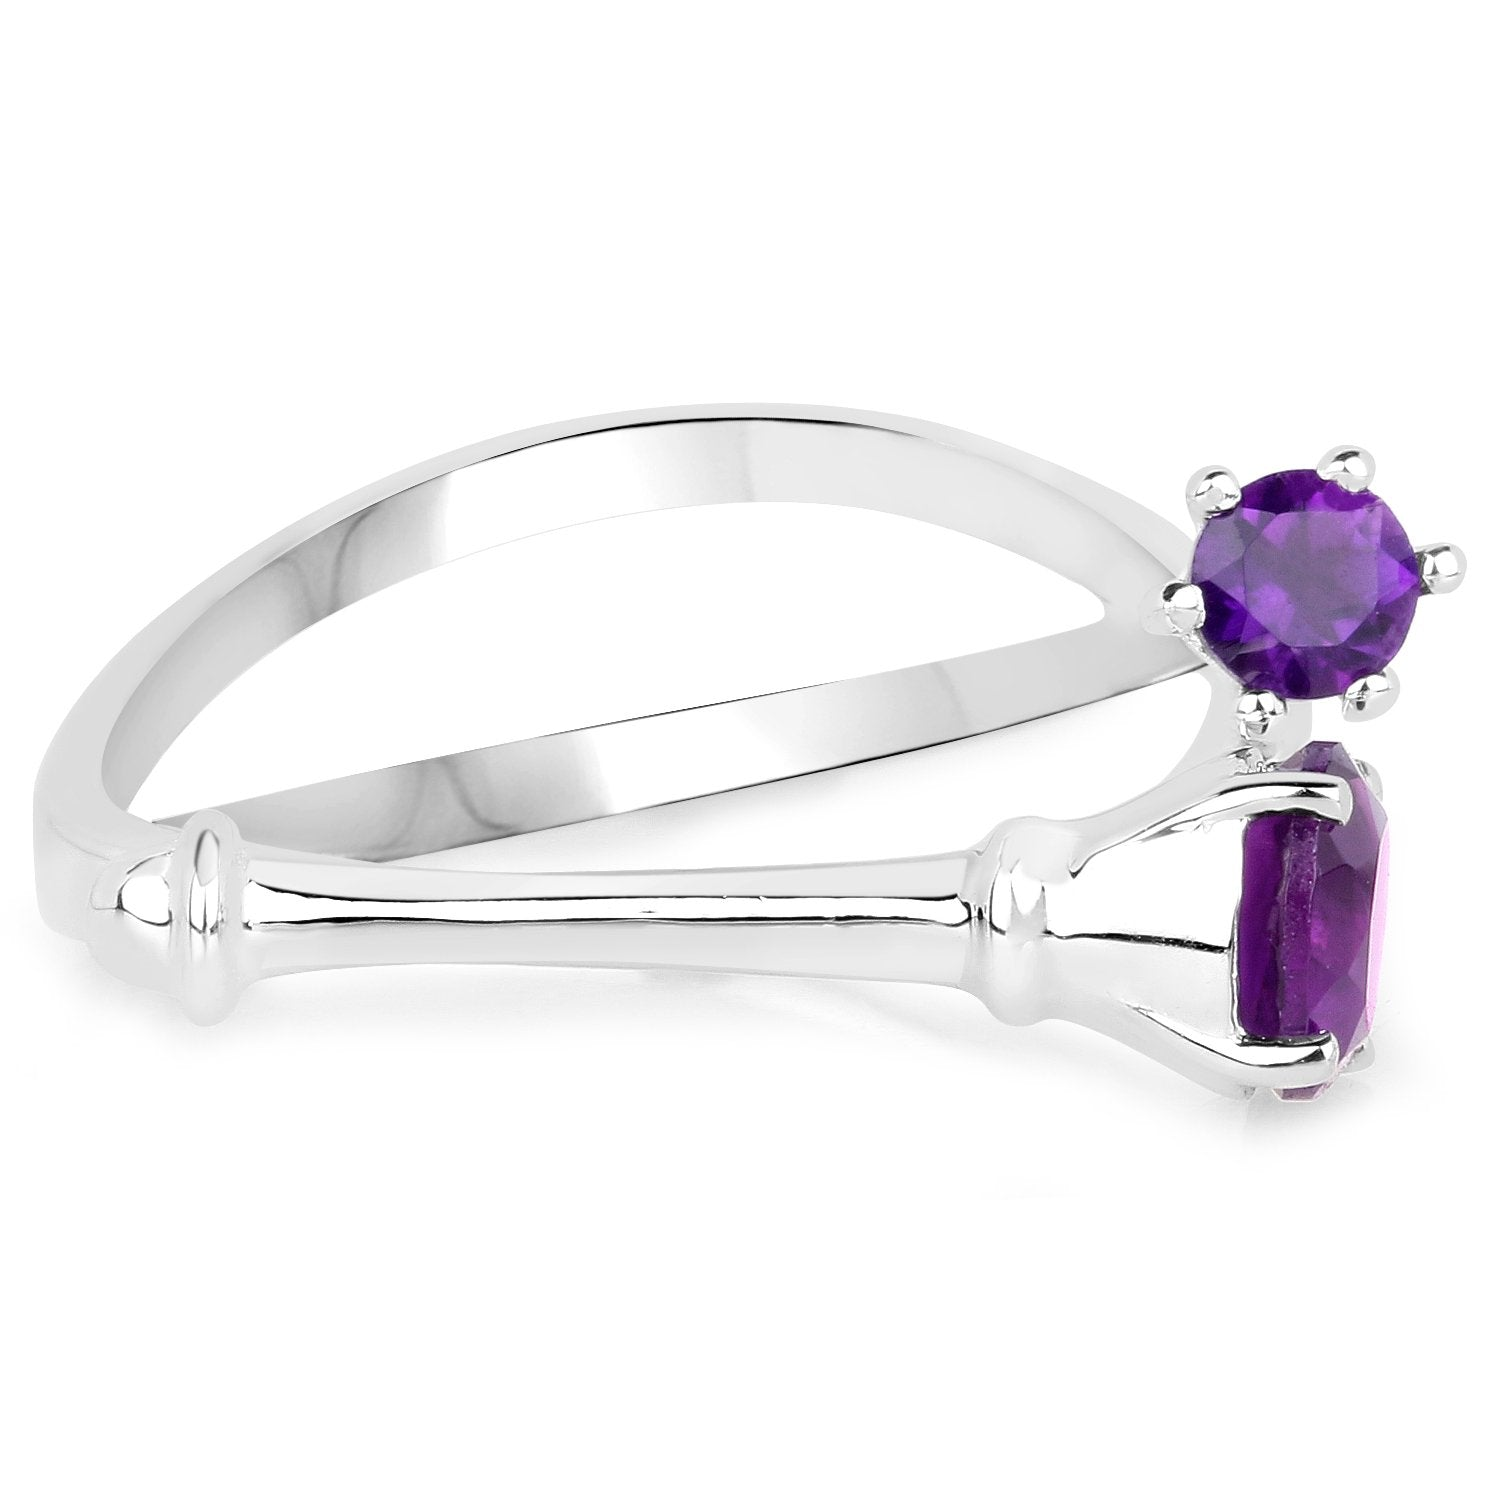 LoveHuang 0.64 Carats Genuine Amethyst Bones Ring Solid .925 Sterling Silver With Rhodium Plating